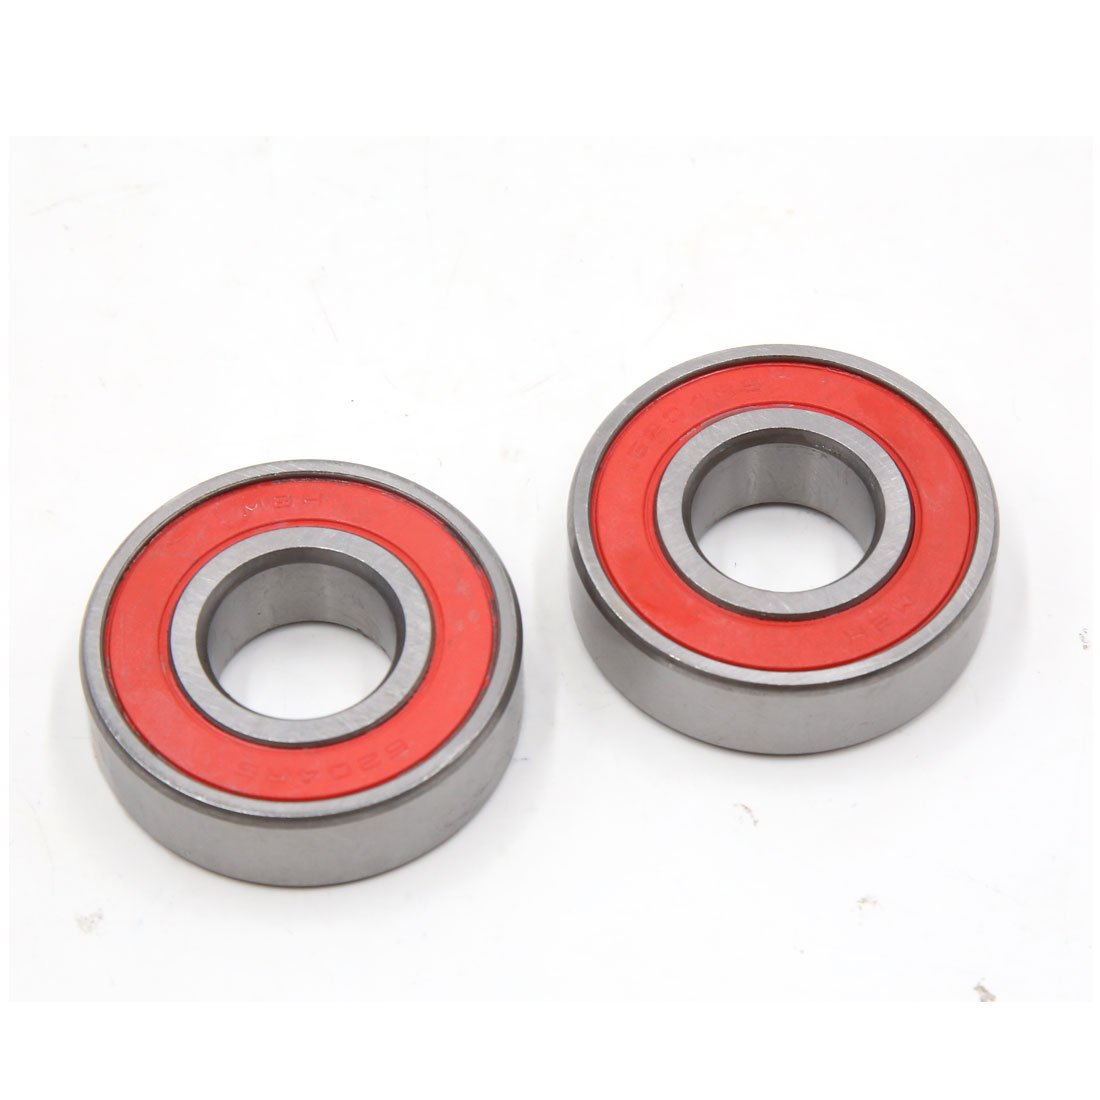 uxcell 10pcs 6204 2RS Sealed Deep Groove Ball Bearing 46 x 23 x 15mm for Motorcycle